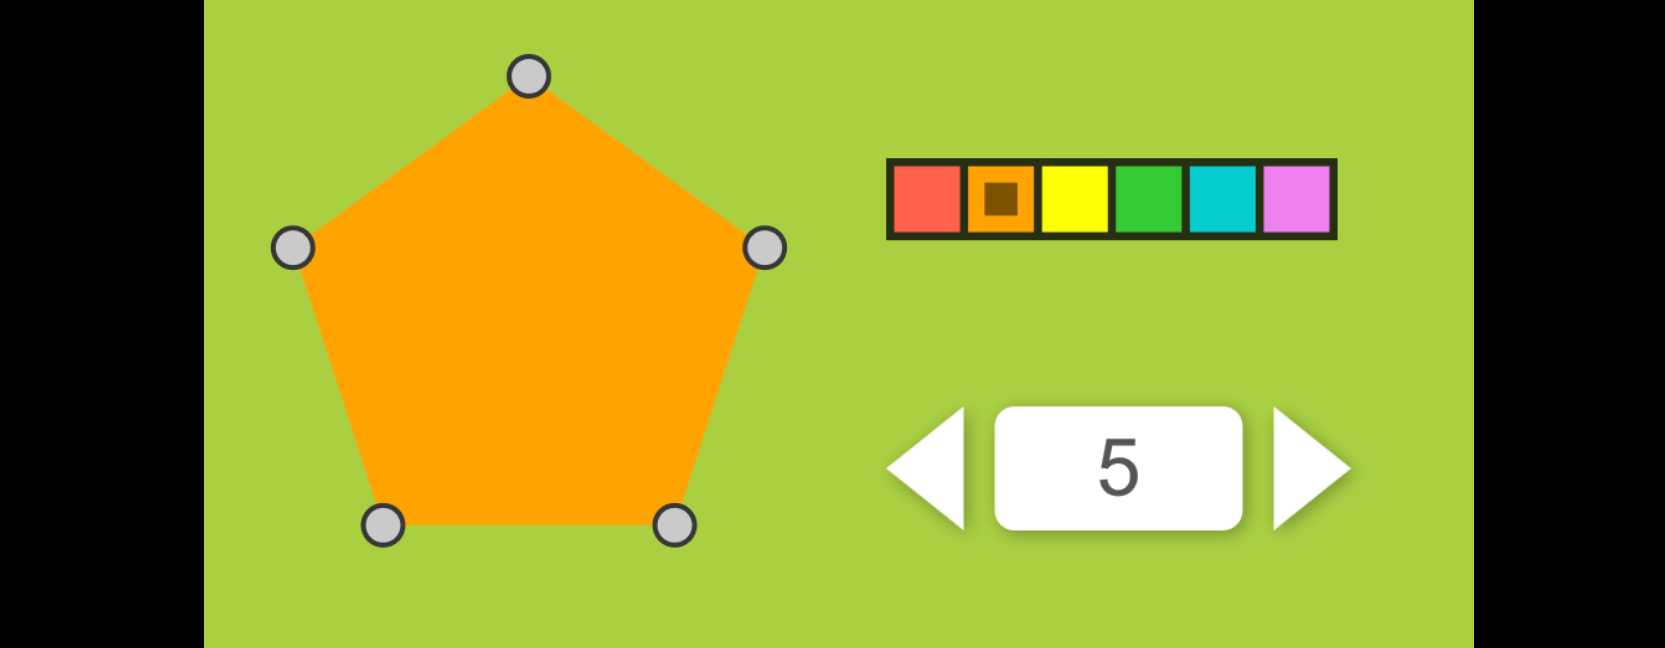 an example of setting the sides of a polygon with a stepper and the color with a colorpicker. Click link beneath to try